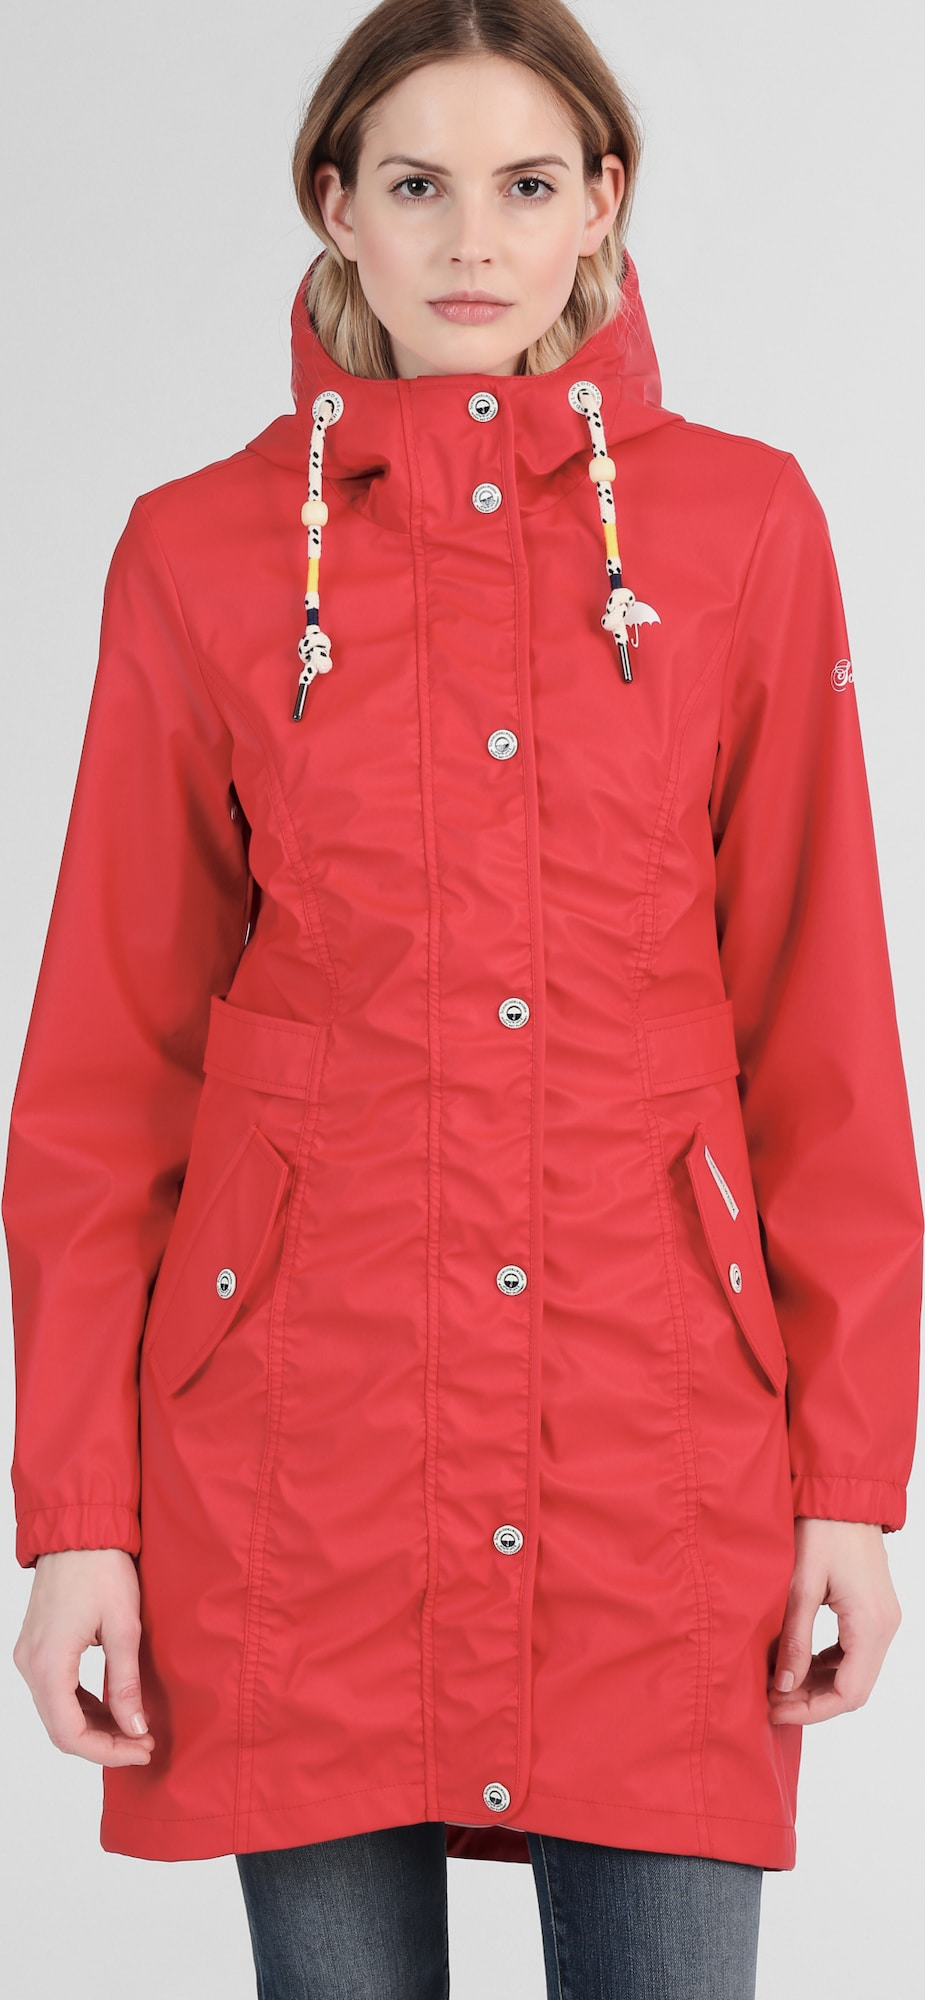 schmuddelwedda damen parka in rot about you. Black Bedroom Furniture Sets. Home Design Ideas